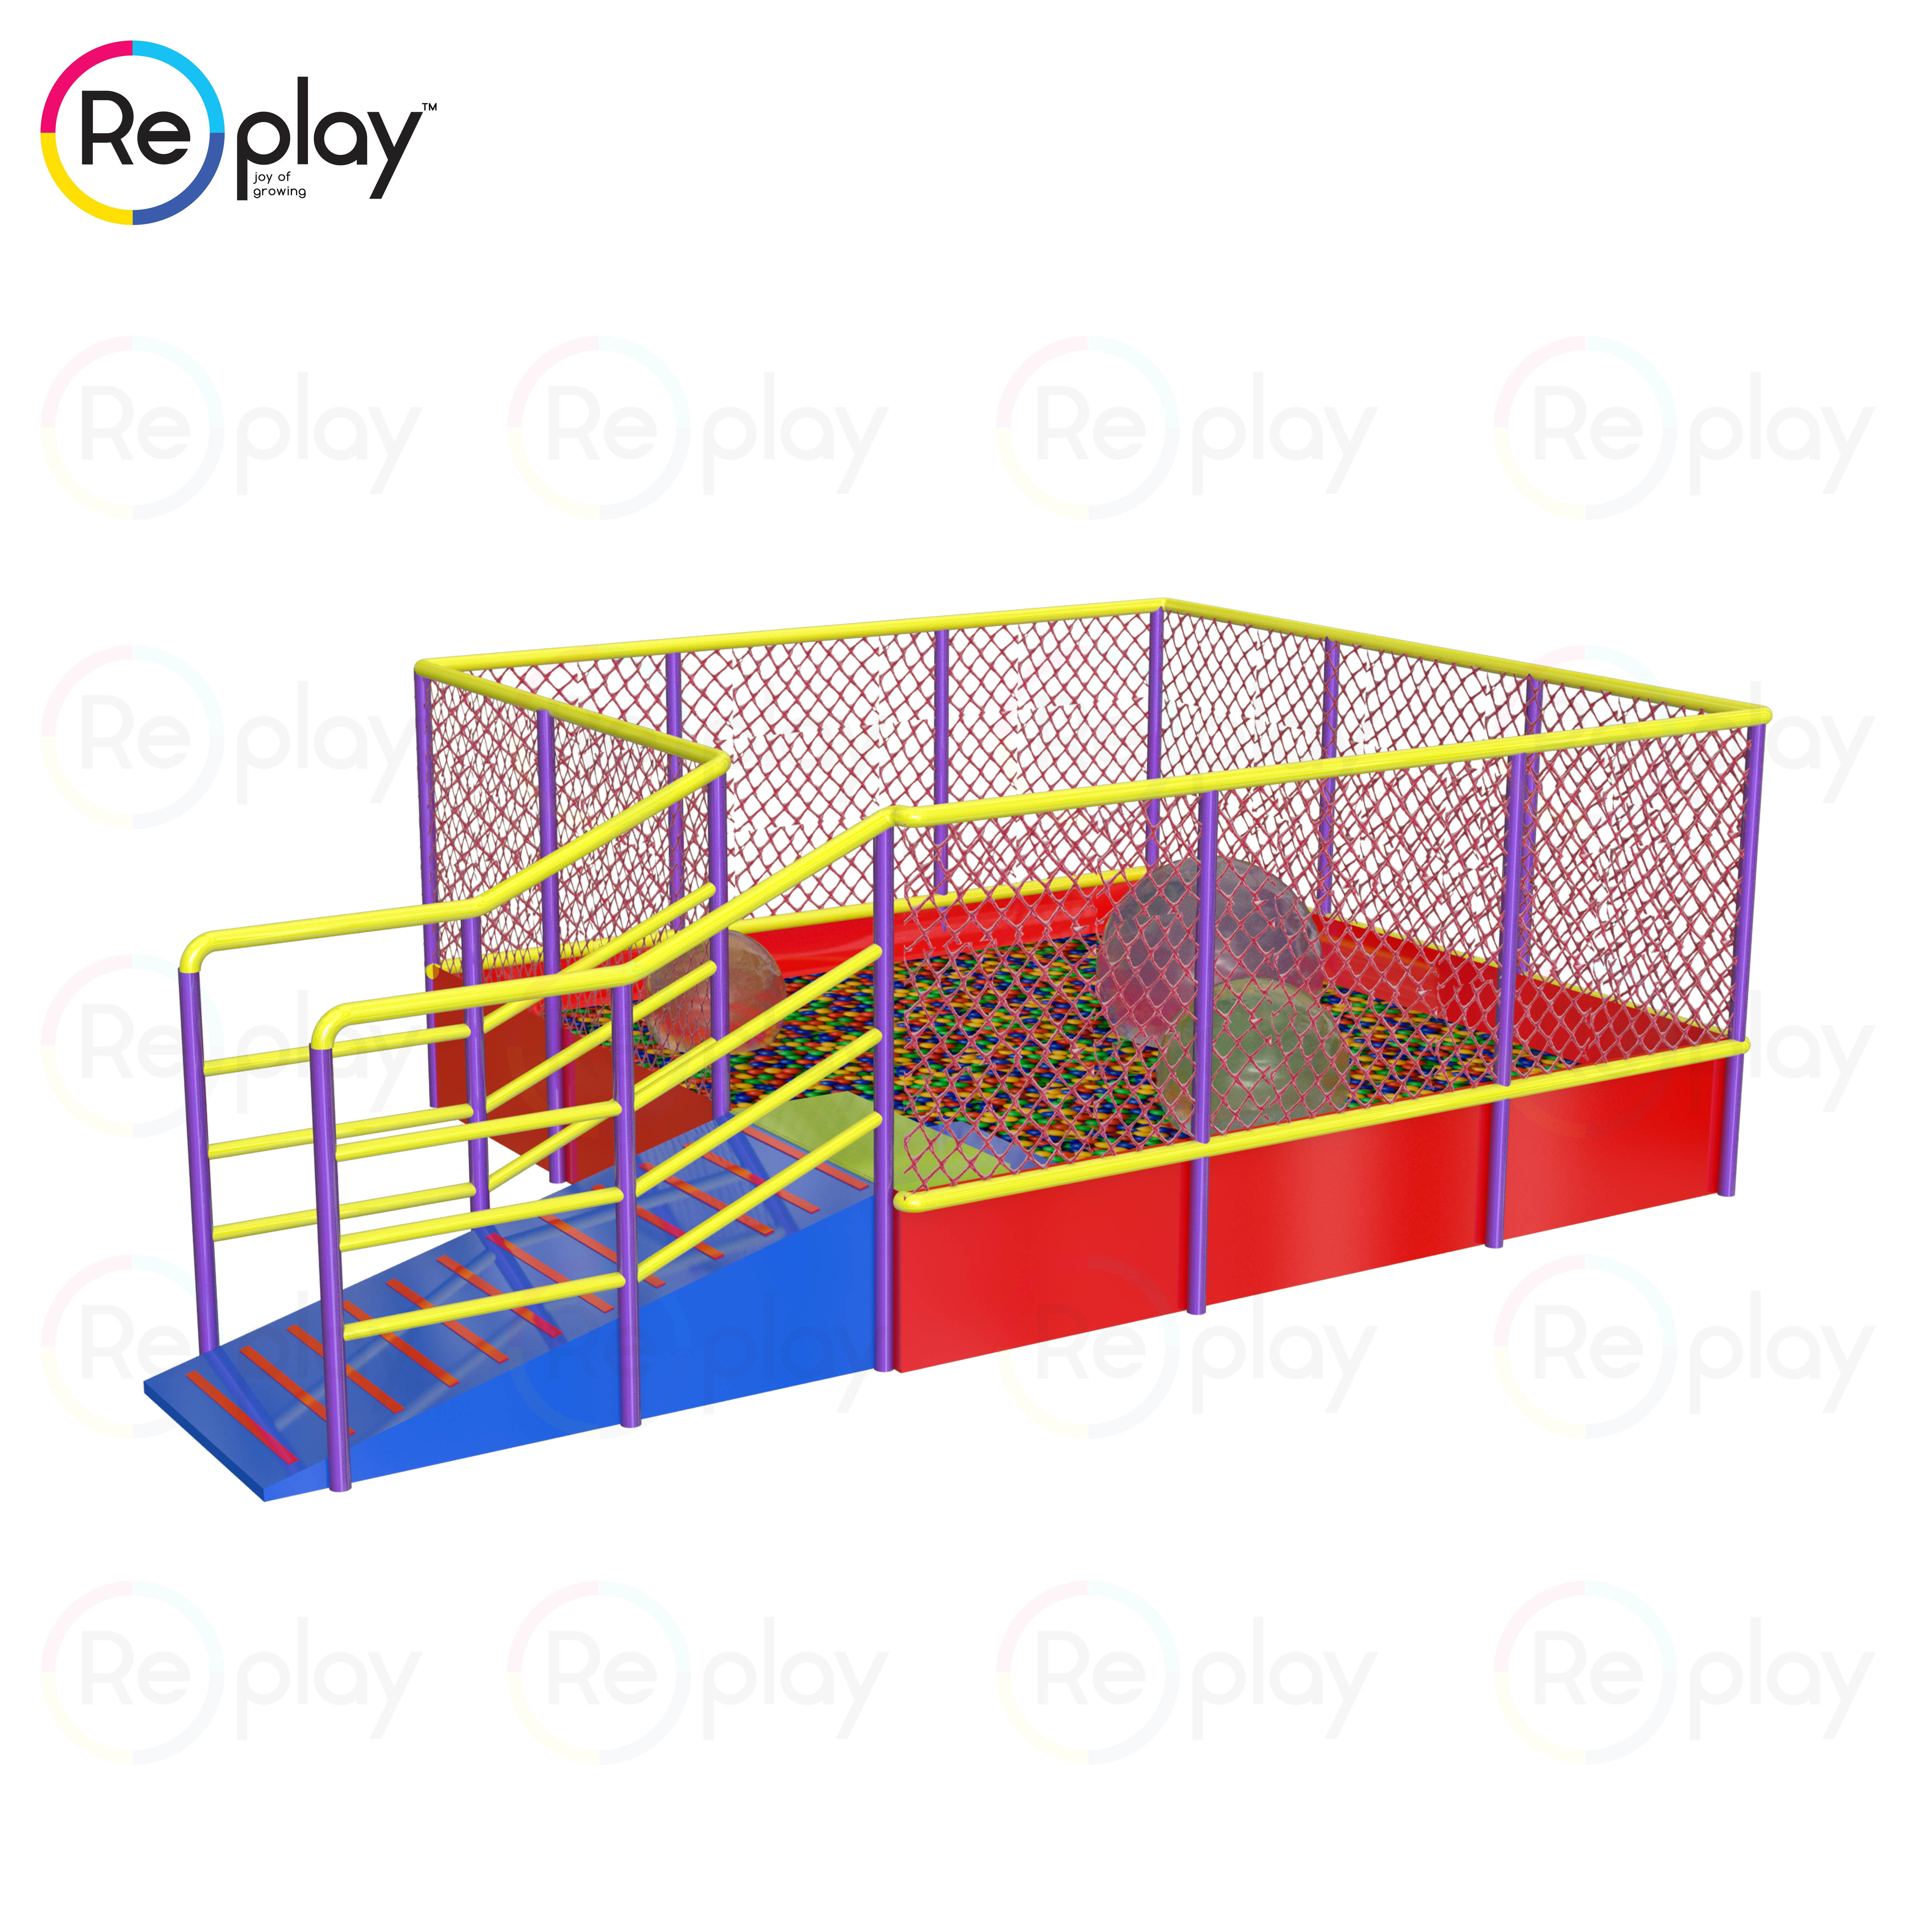 Ball Pool - Crawling Tunnel3 - specially abled playground equipment